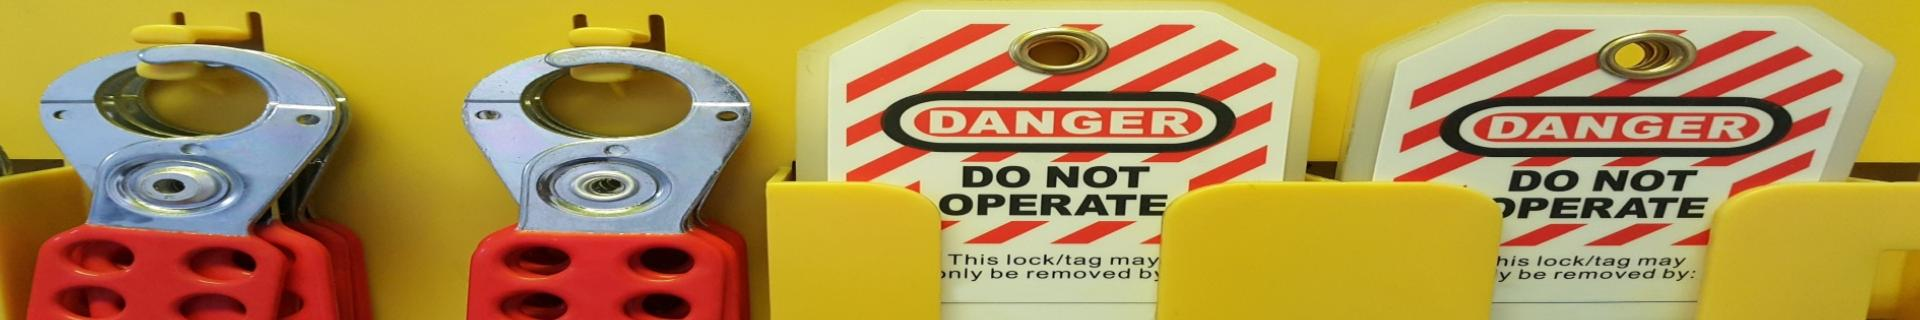 Electrical Safety and Lockout/Tagout – International